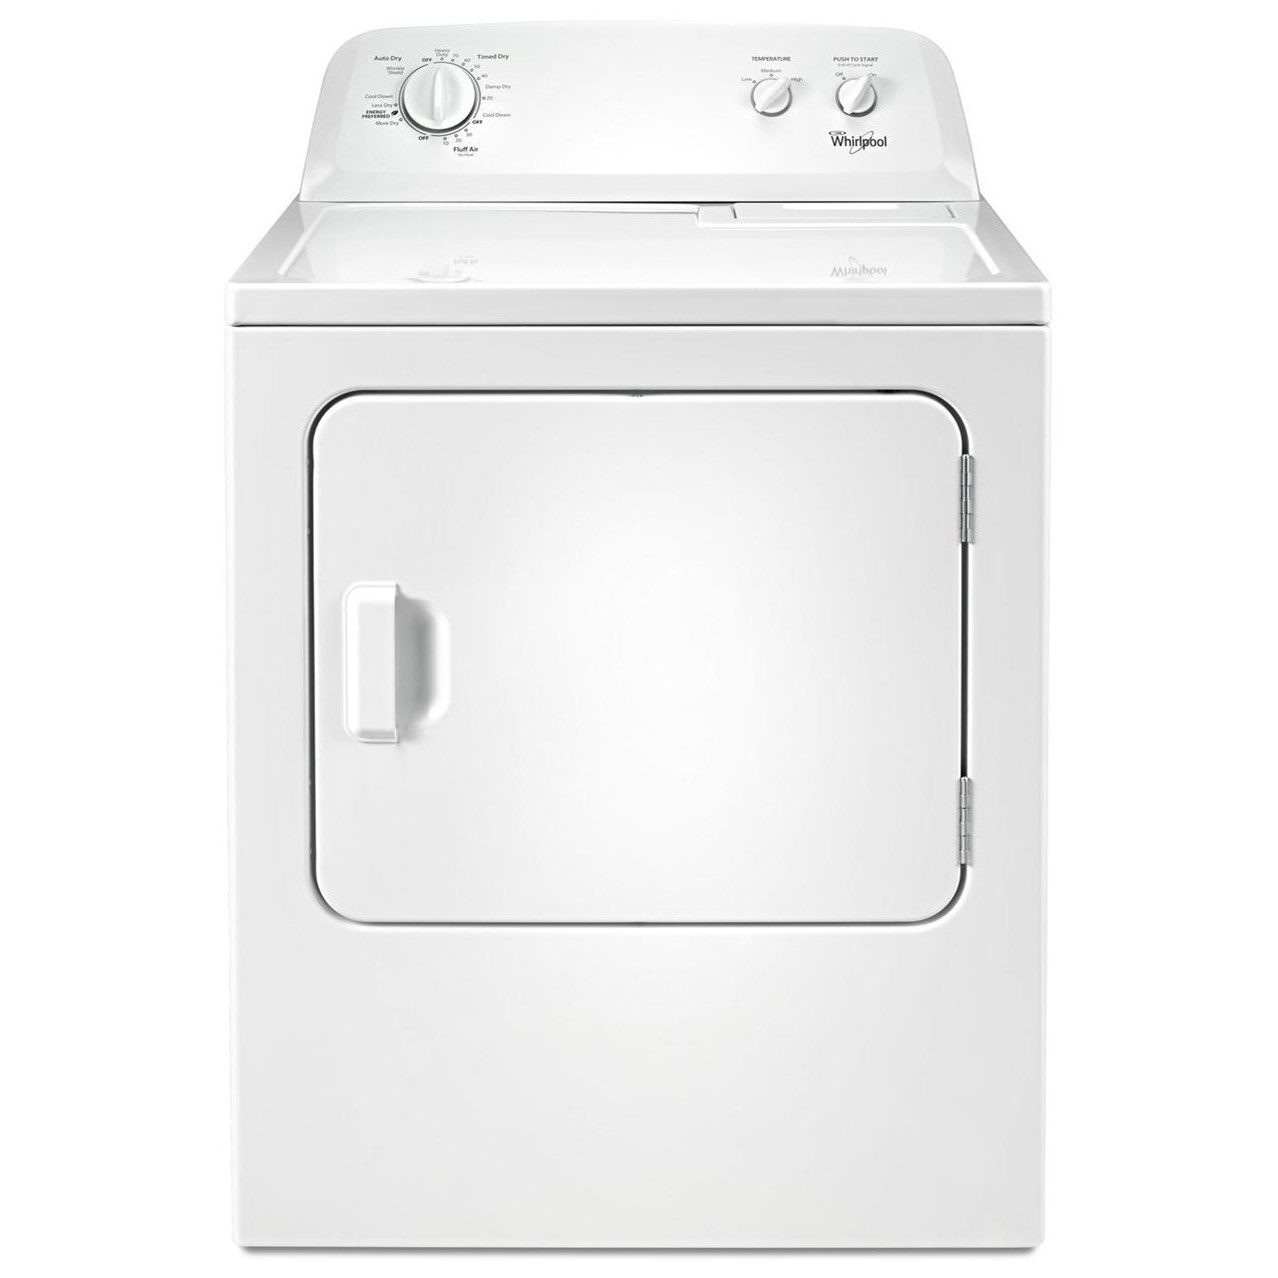 Electric Front Load Dryers 7.0 cu. ft. Top Load Paired Dryer by Whirlpool at Pedigo Furniture